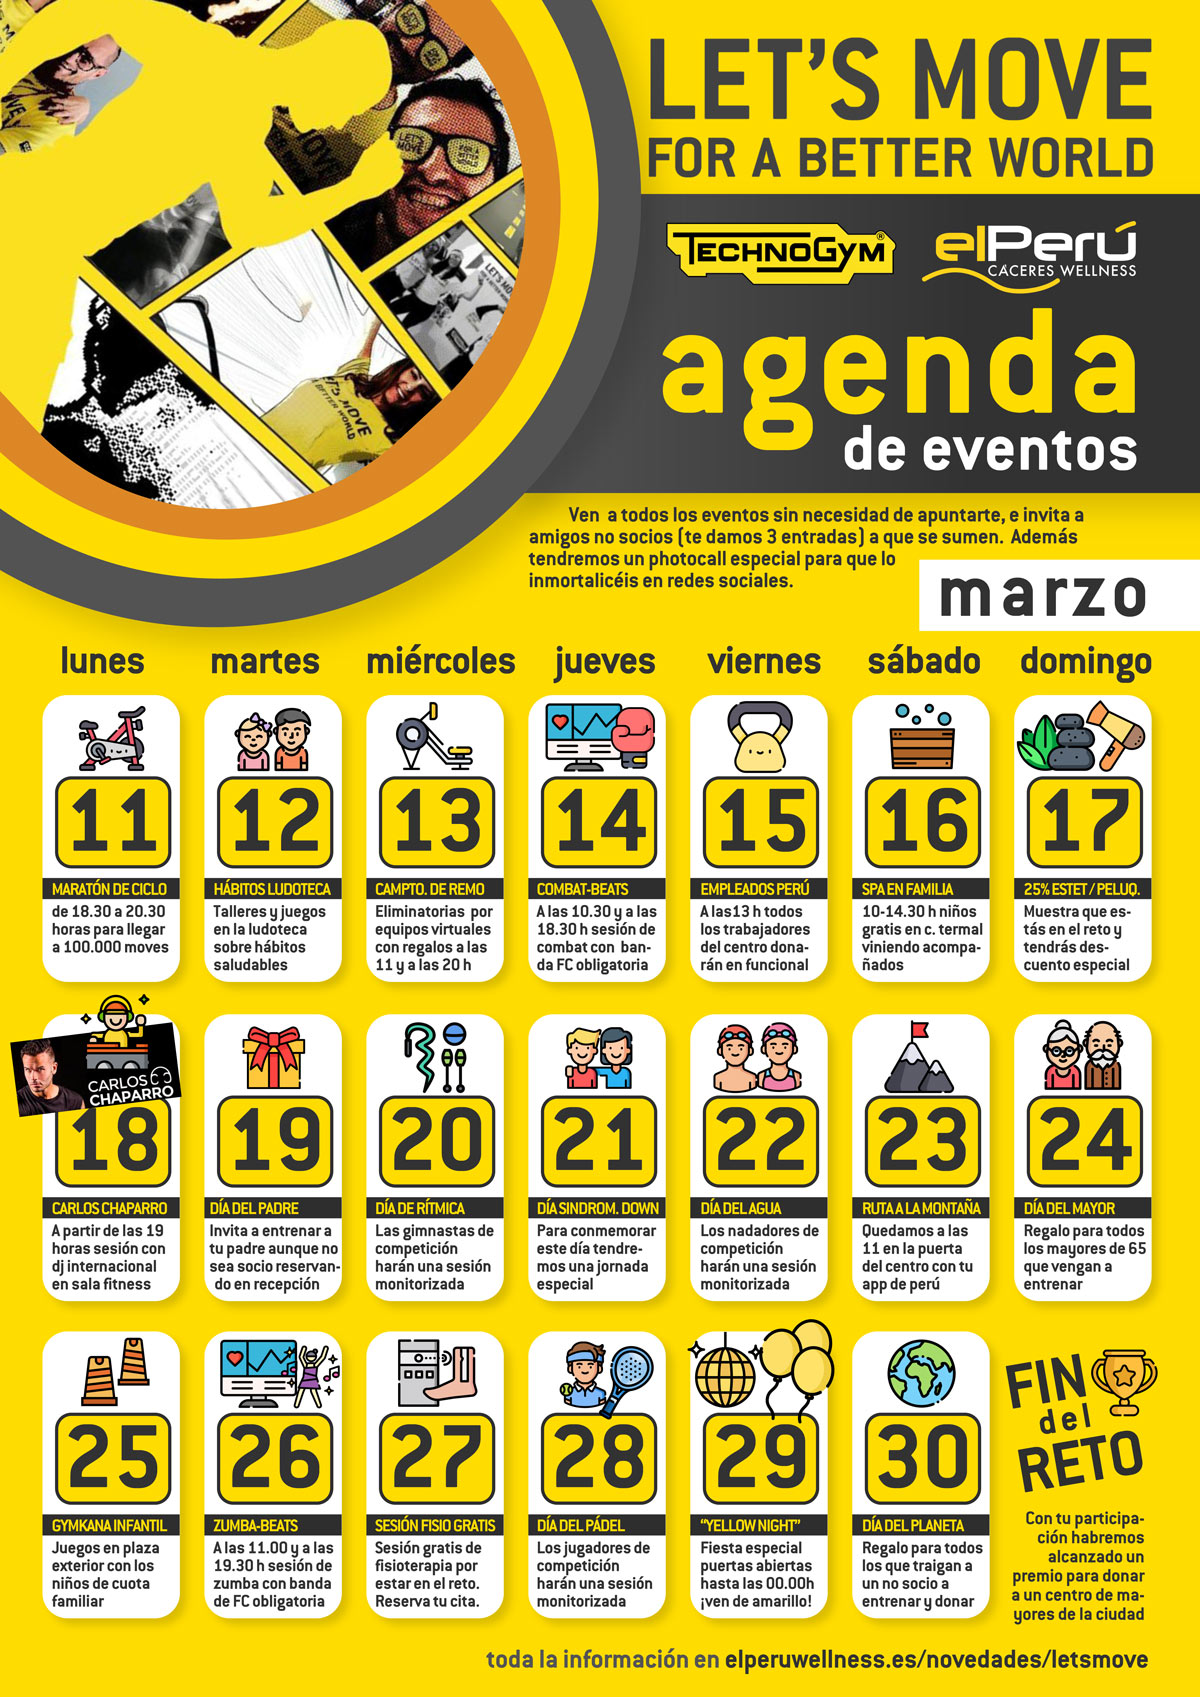 calendario-letsmove19.jpg